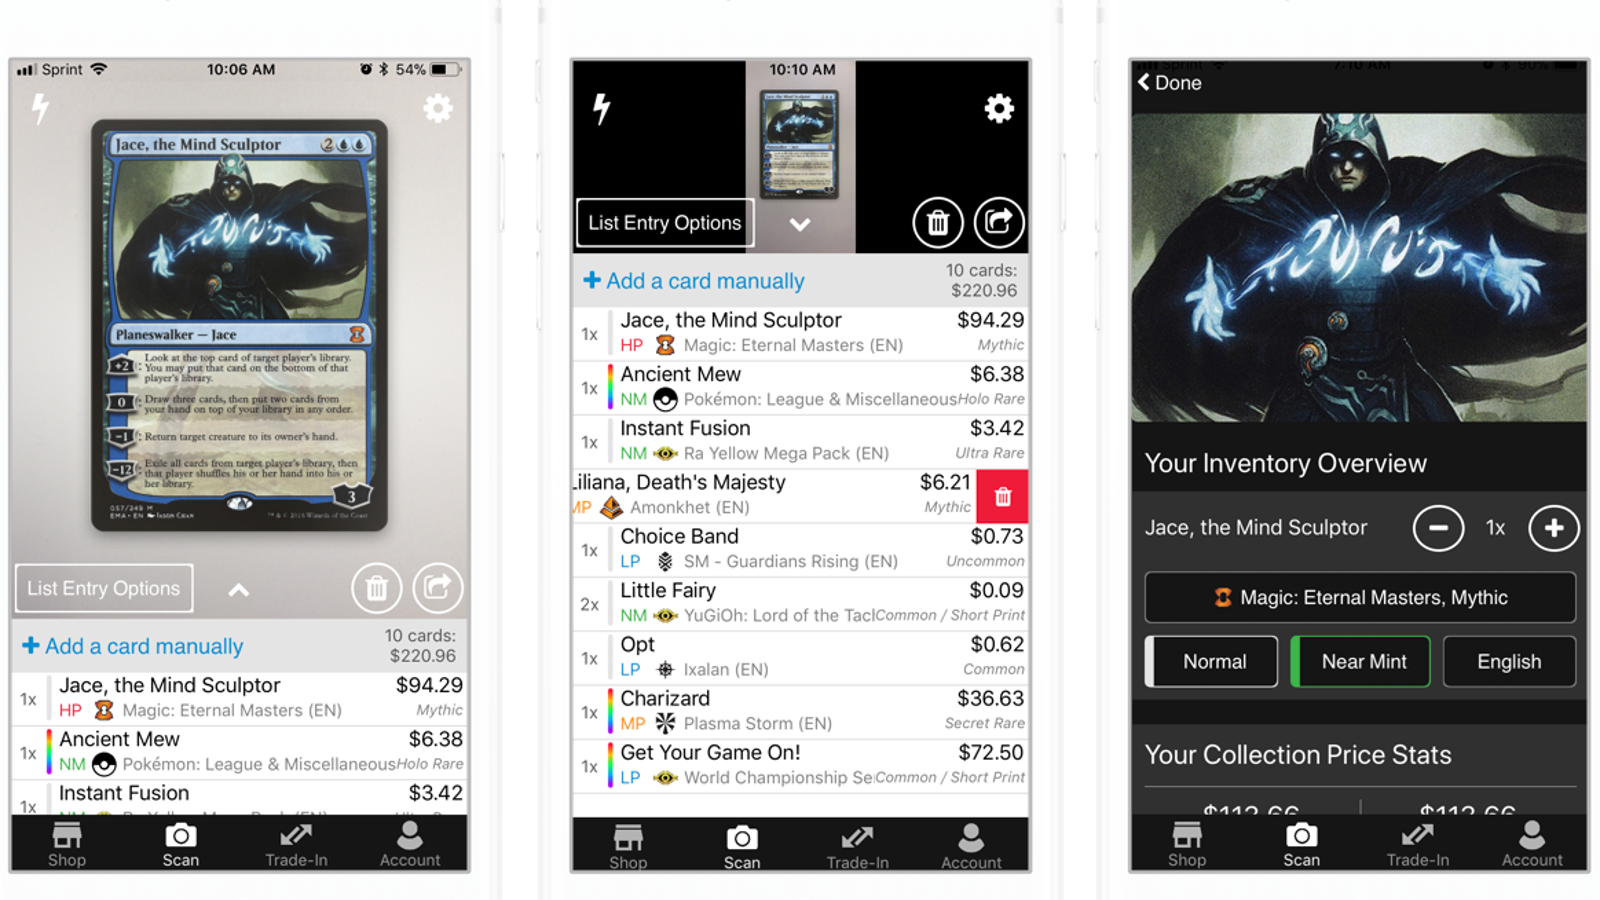 QnA VBage Organize Your Trading Card Game Collections with These Apps